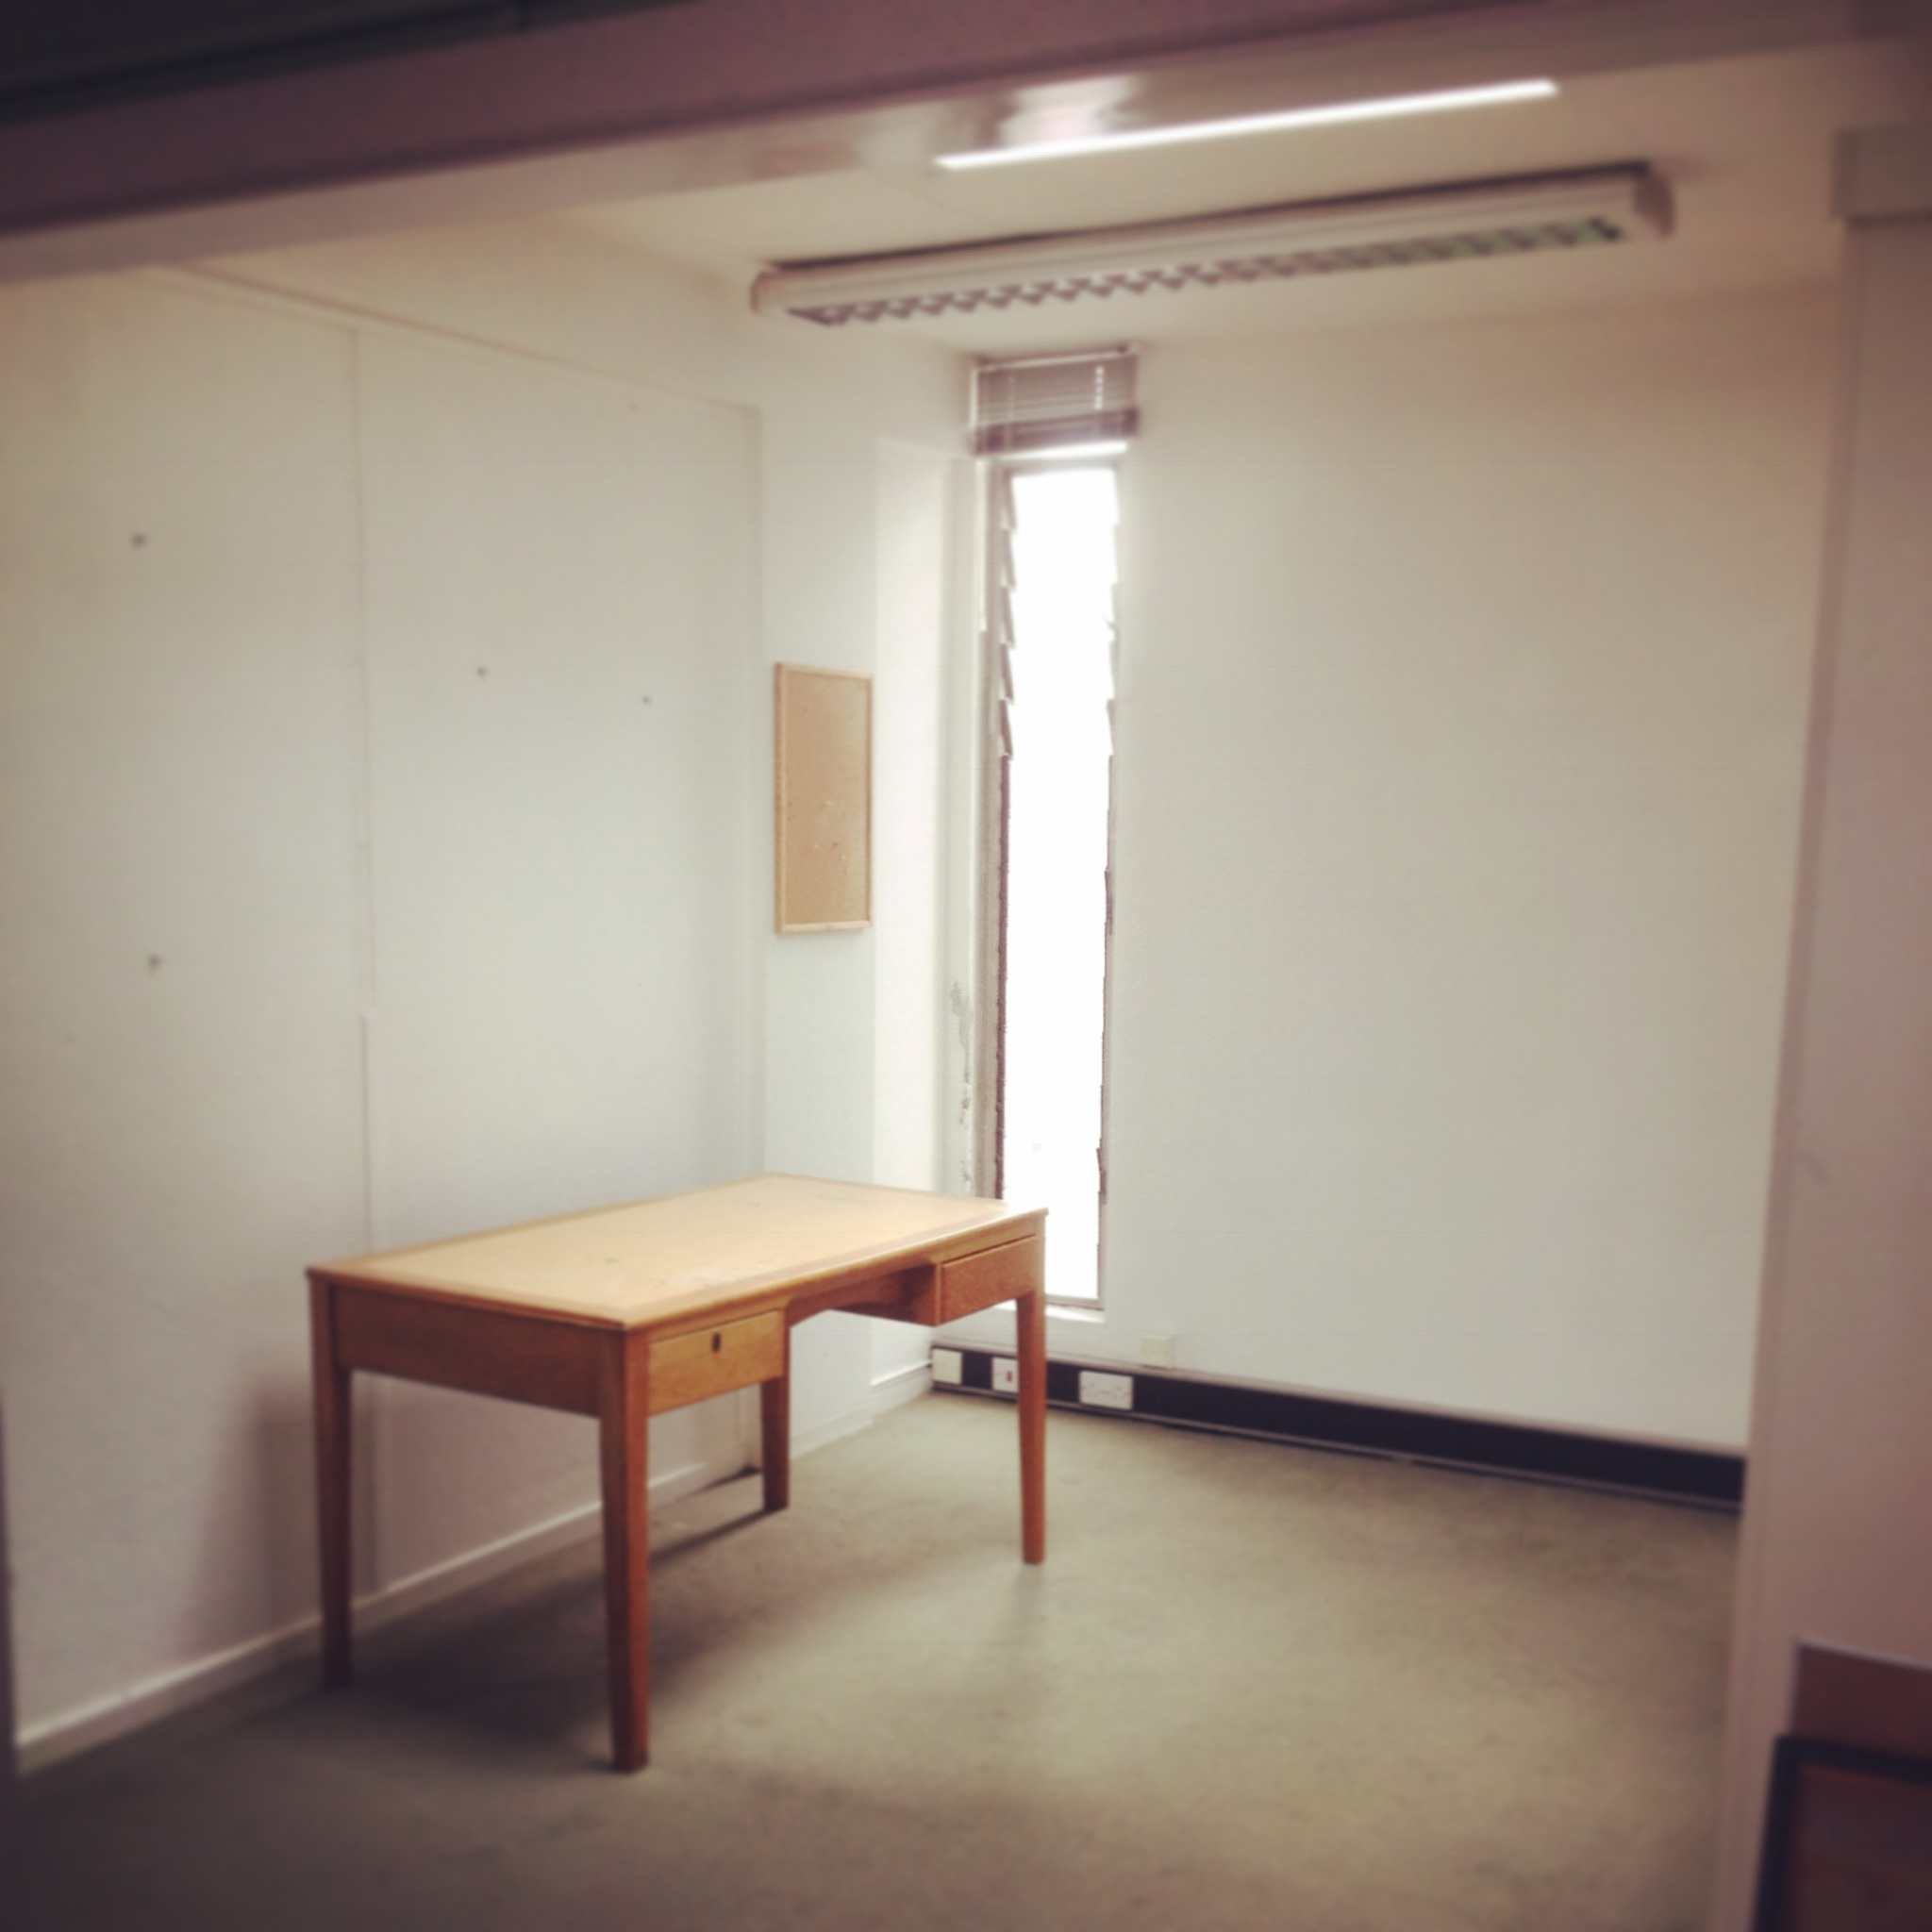 Studio Available from Mid January - Top Floor , Open plan studio space available£145 per calendar monthIncludes Wifi, Rates, Water, Electric24/7 access to your studio space.